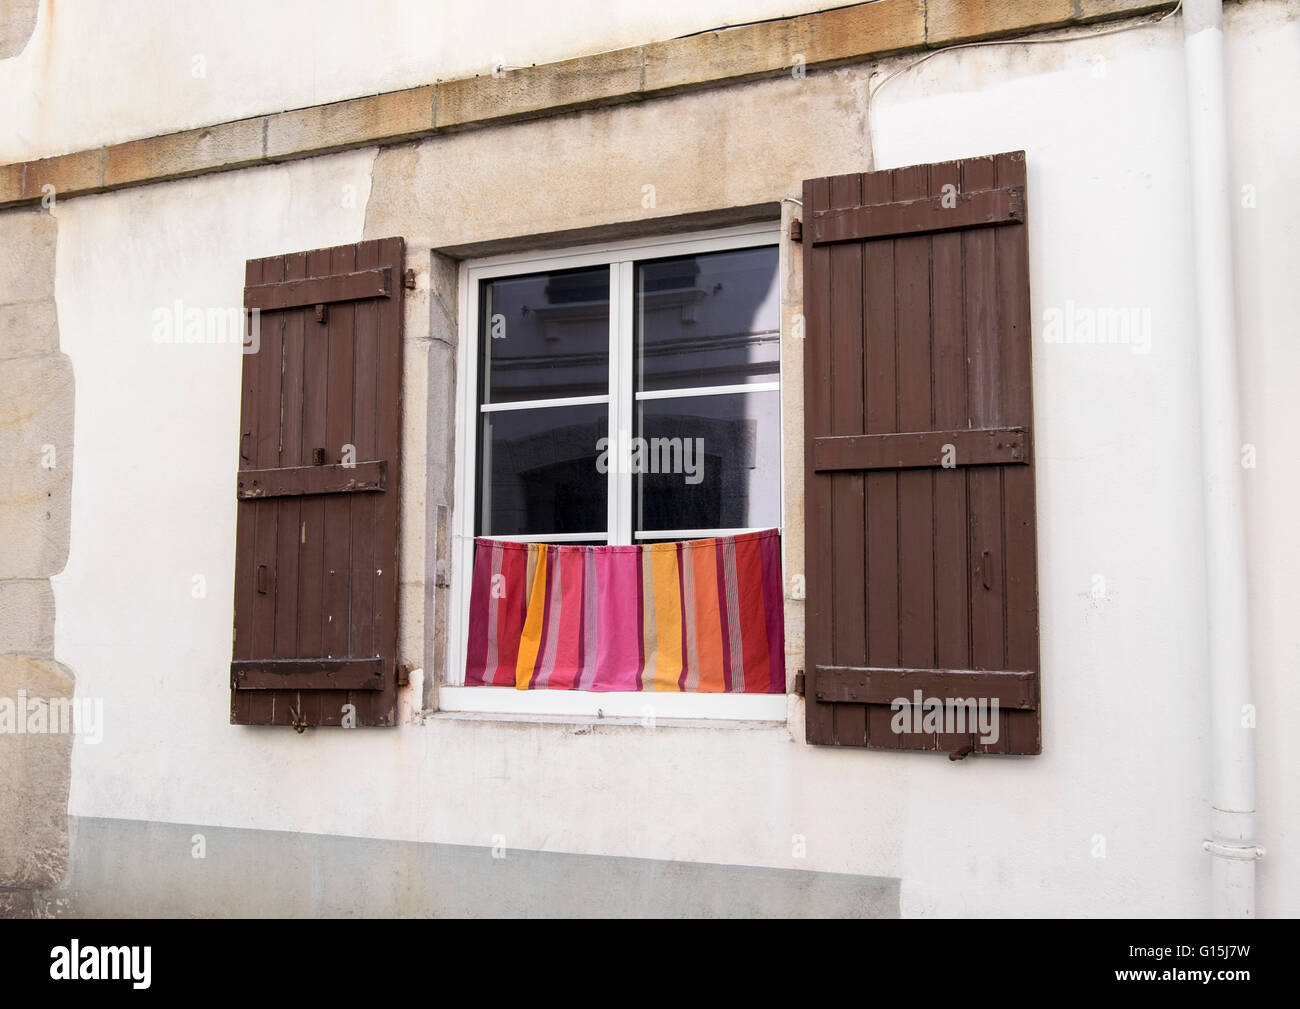 Window with brown wooden shutters and curtain - Stock Image